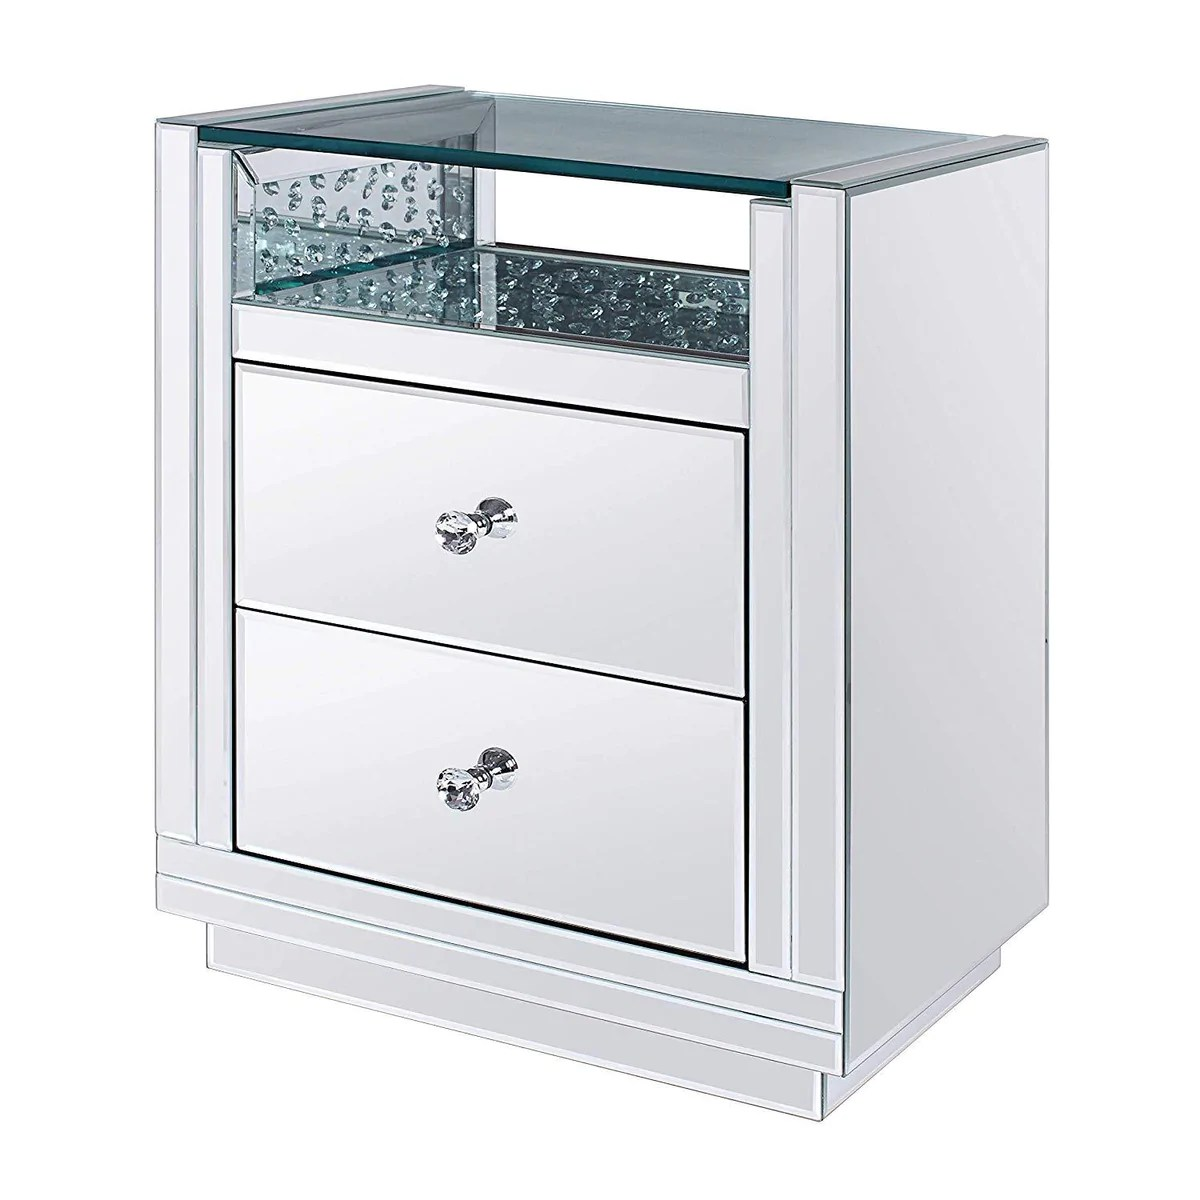 Bm195983 Two Drawers Wooden Nightstand With Mirrored Paneling Clear